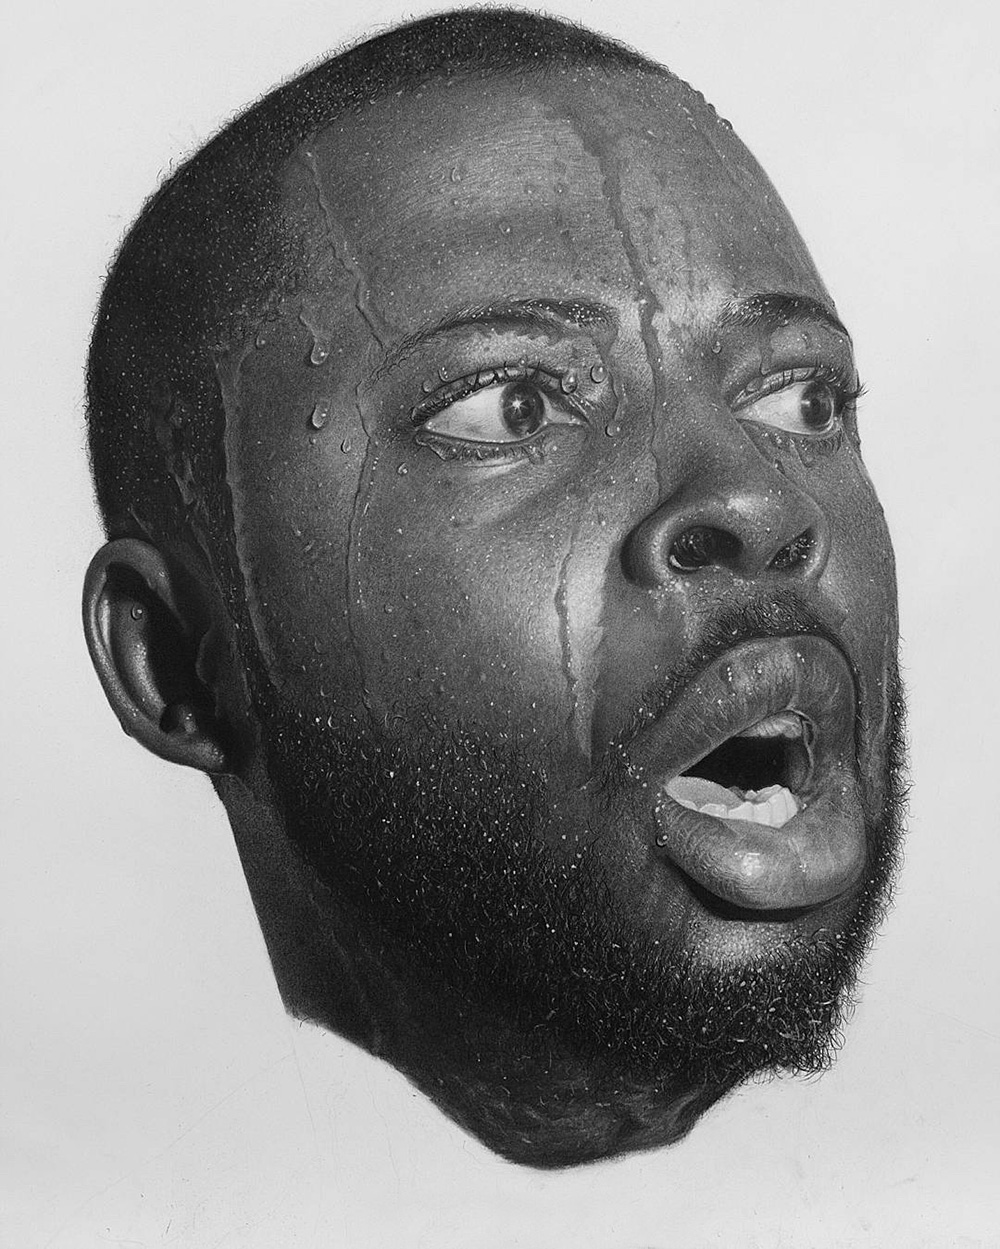 INSOMNIA, 2017. 27″ X 42″. Progress photo. Graphite and charcoal pencils on Strathmore 3